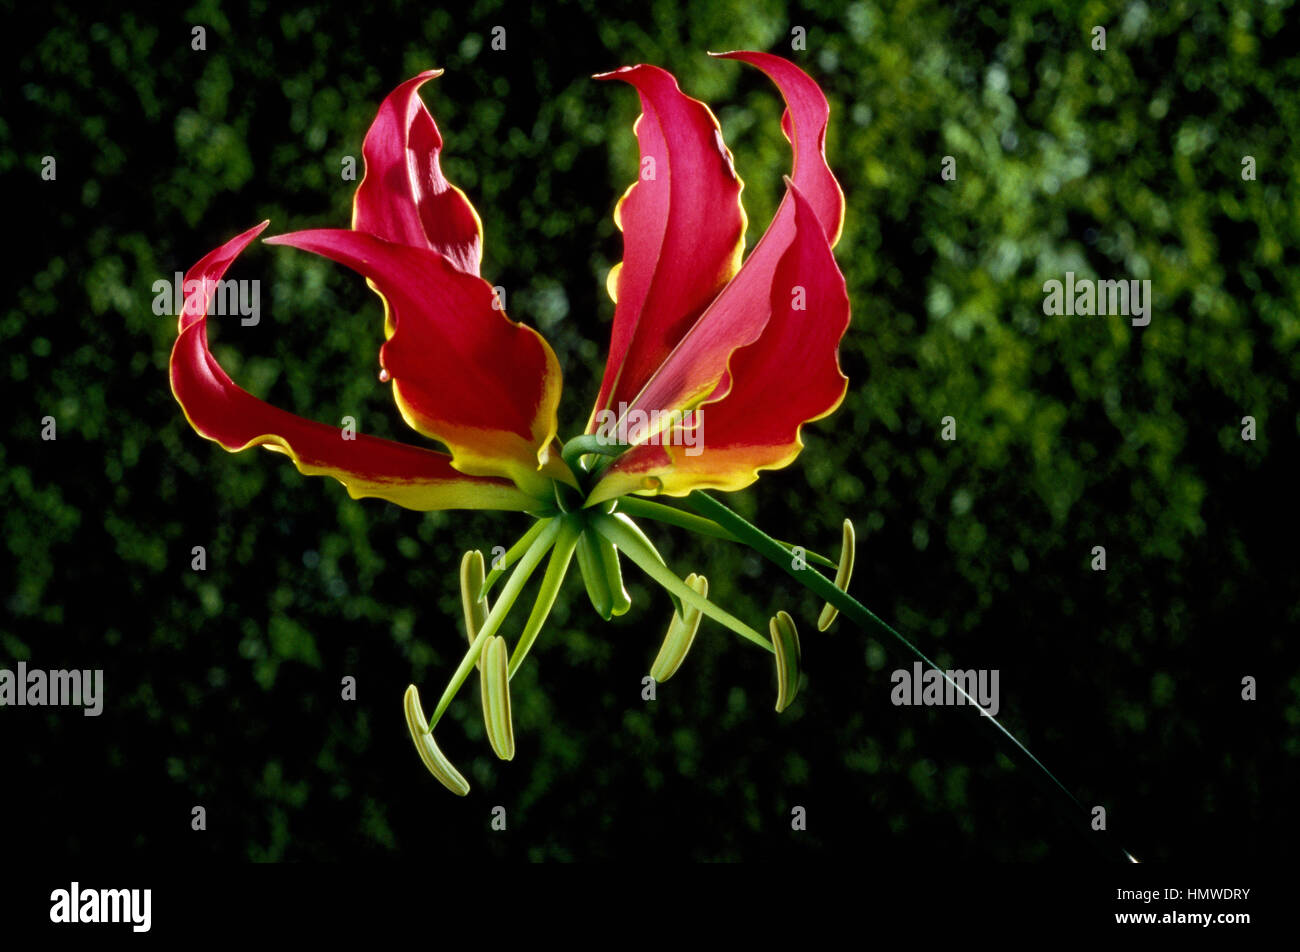 Flame lily, Glory lily or Climbing lily (Gloriosa rothschildiana or Gloriosa superba), Colchicaceae. - Stock Image